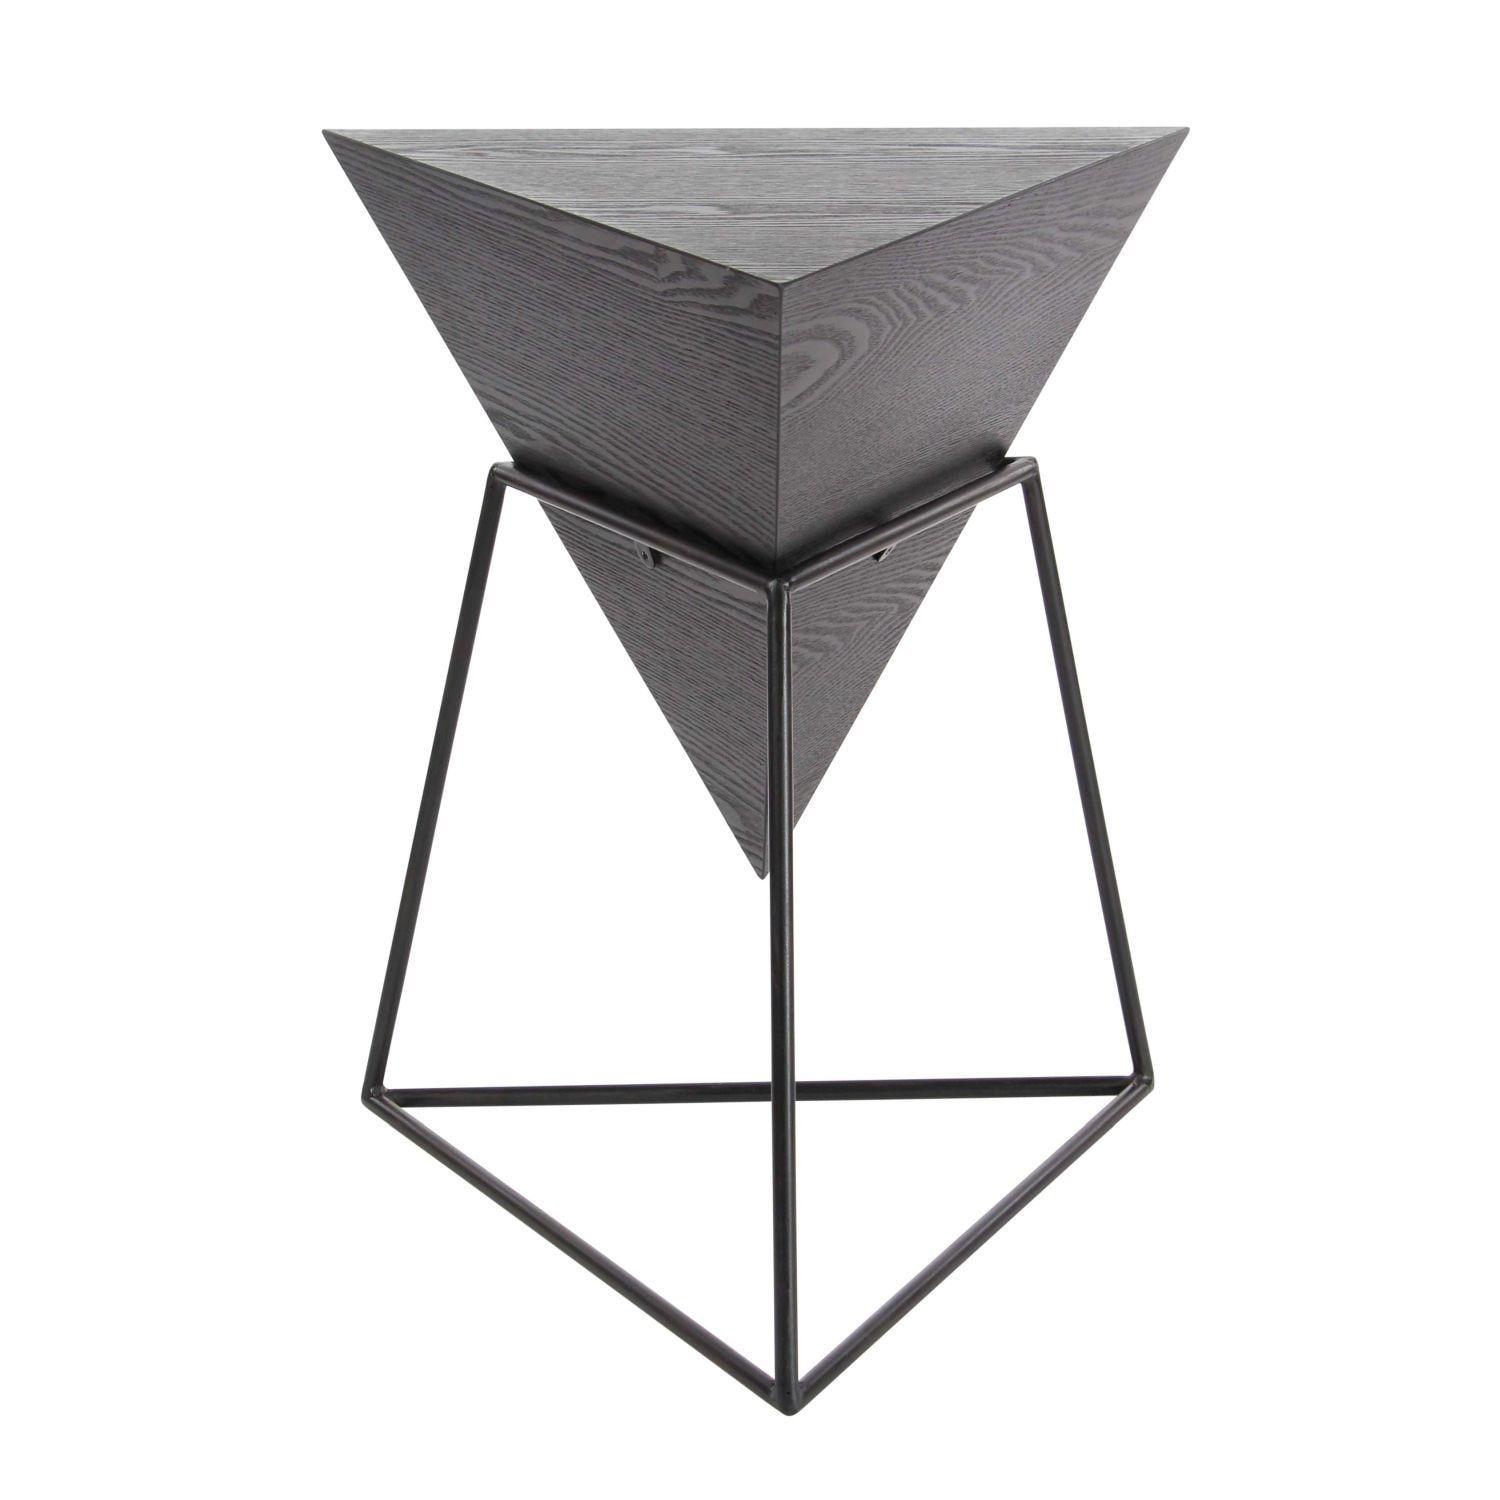 Studio 350 Wood Metal Triangle Table 20 Inches Wide 24 Inches